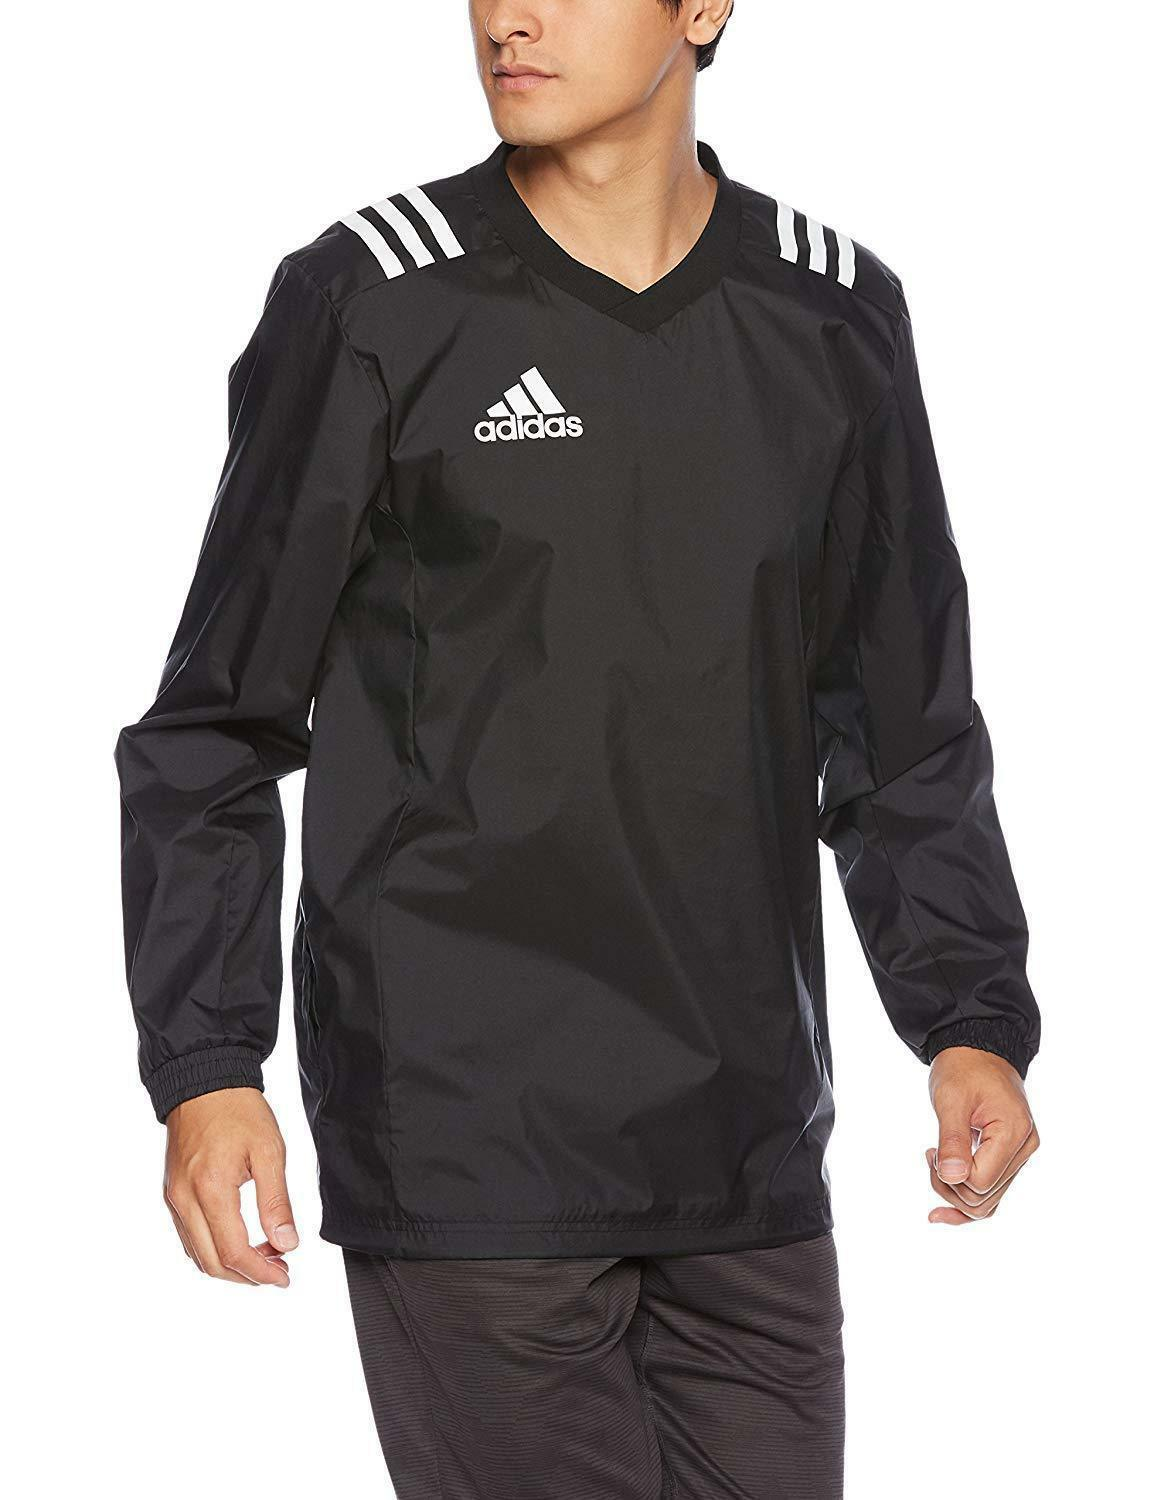 Adidas Men's schwarz Rugby Contact Pullover Water Resistant Track Top